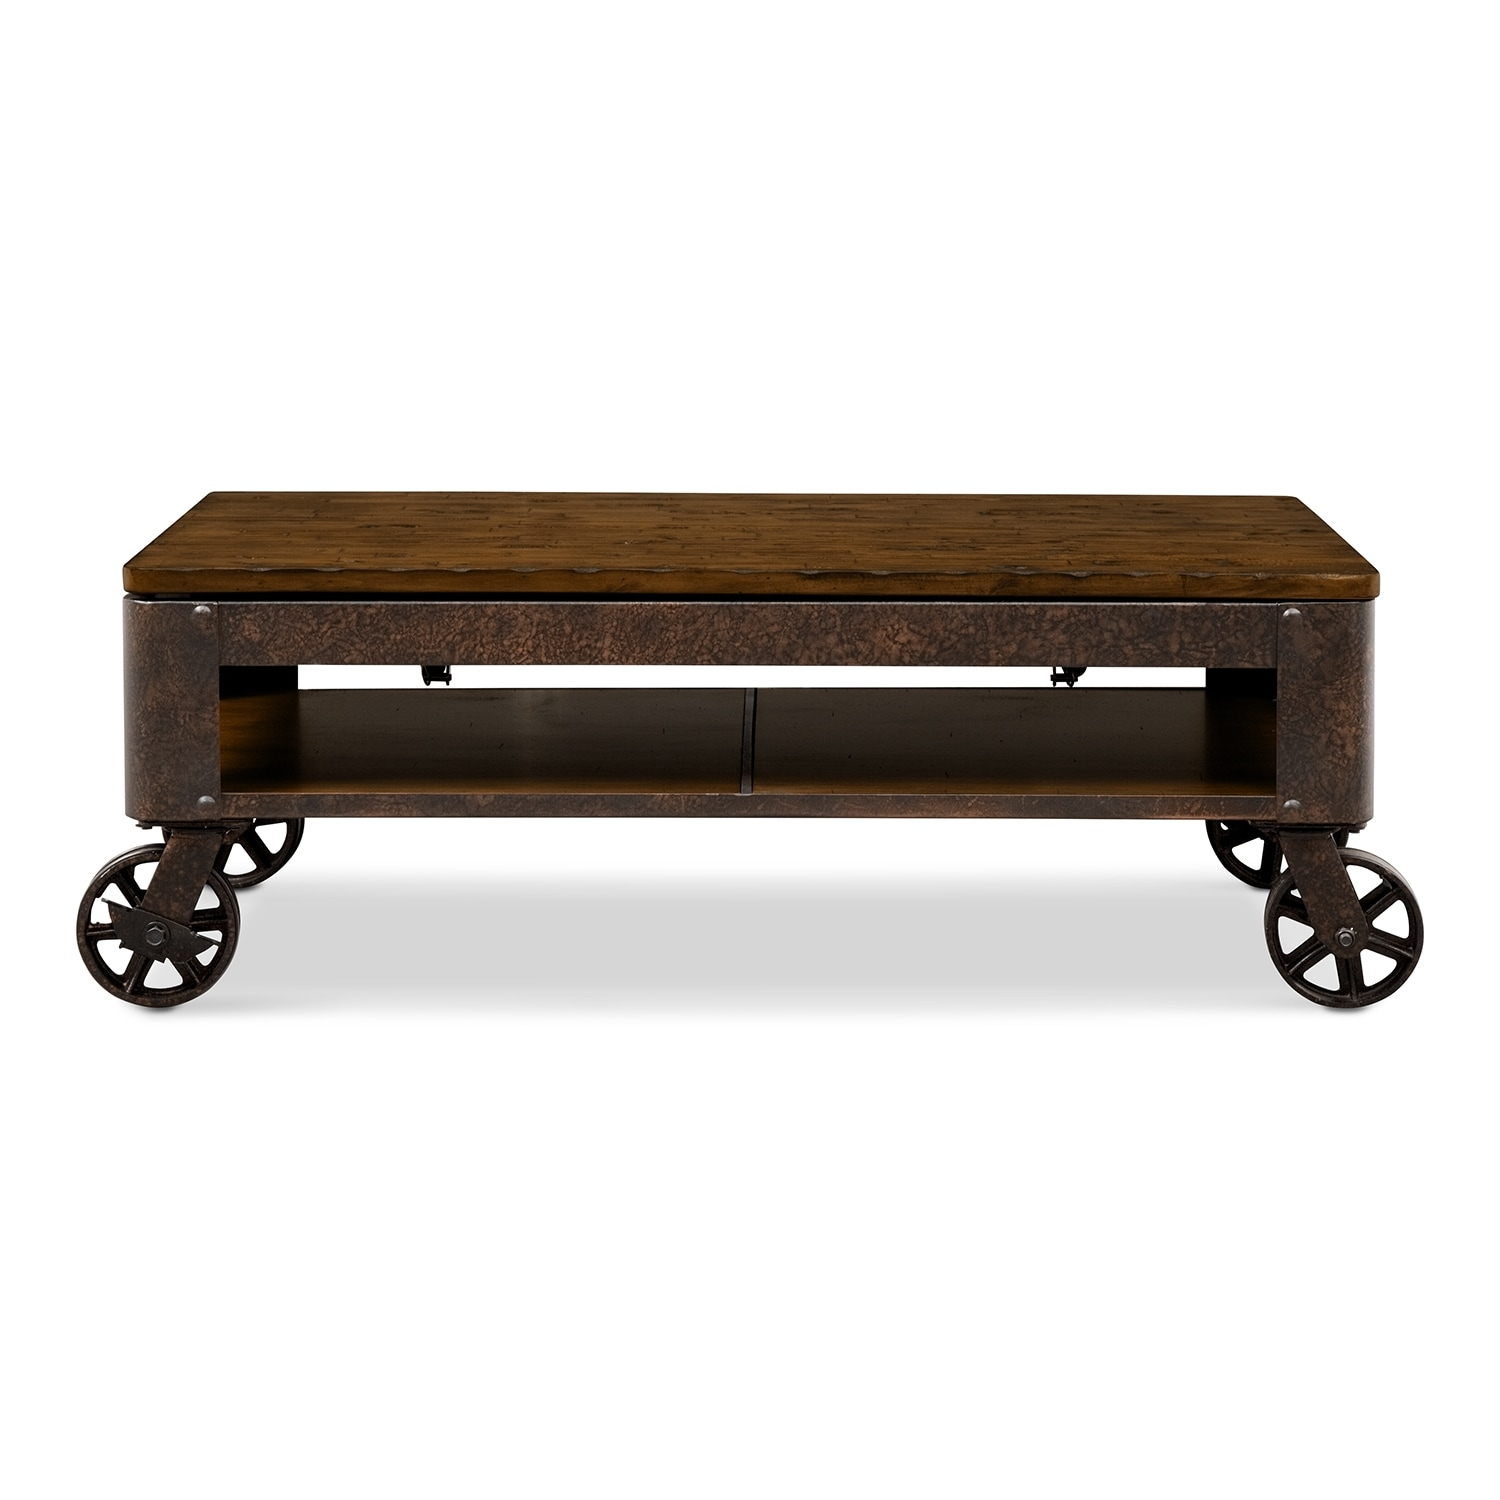 Small Coffee Tables That Lift Up: Value City Furniture